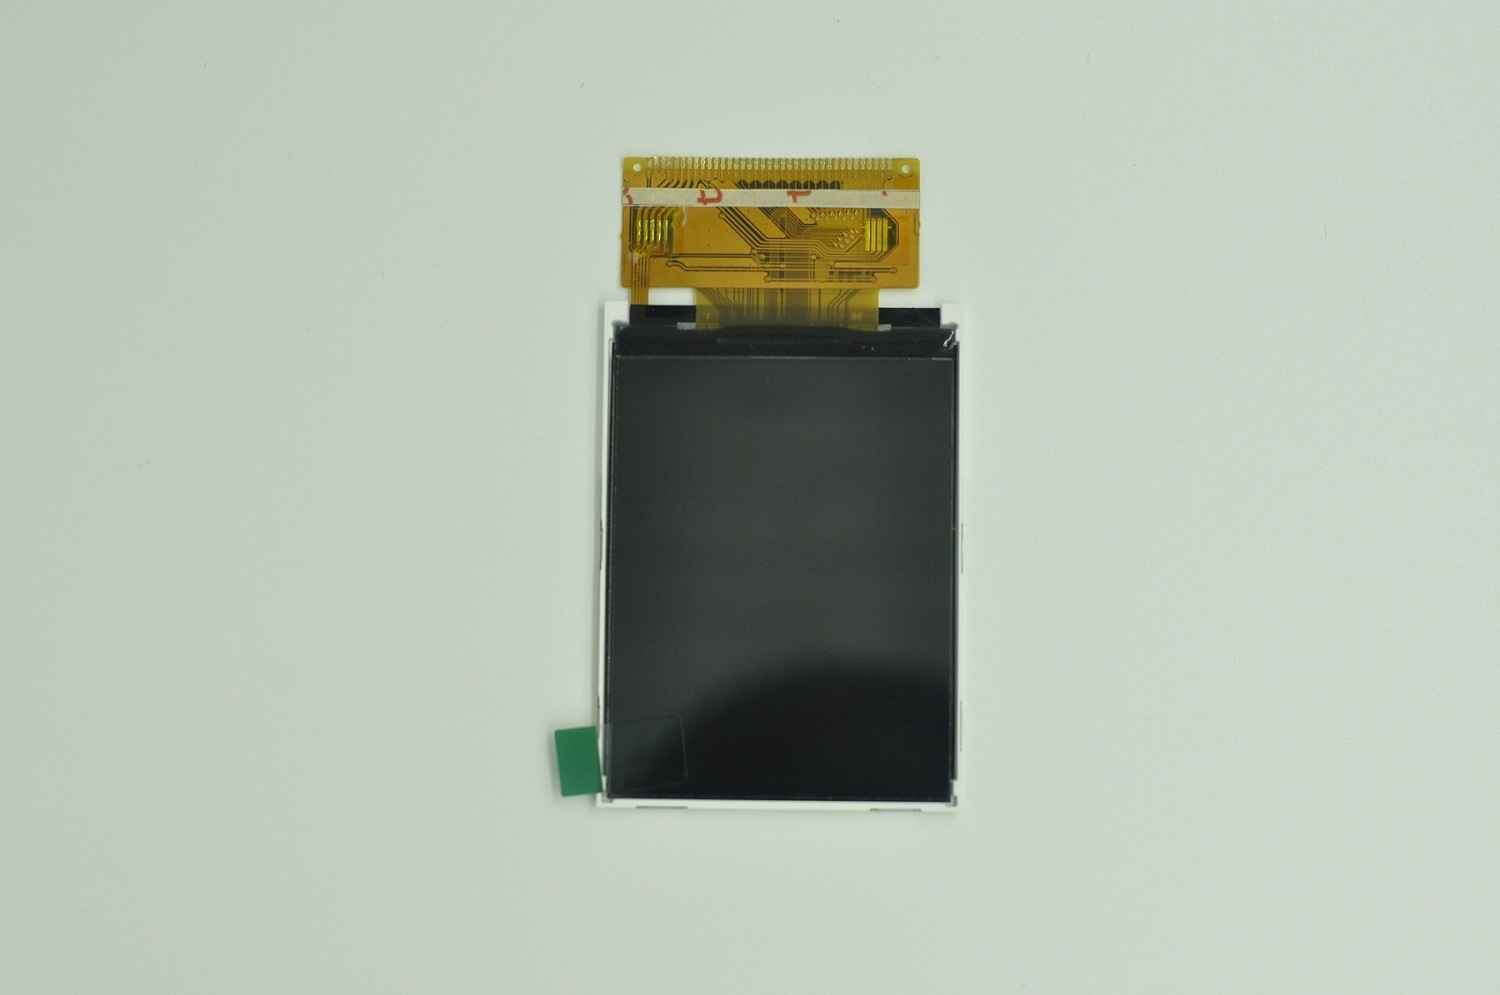 Rg-T240mcqi-01p 2.4inch TFT LCD Screen with MCU Interface